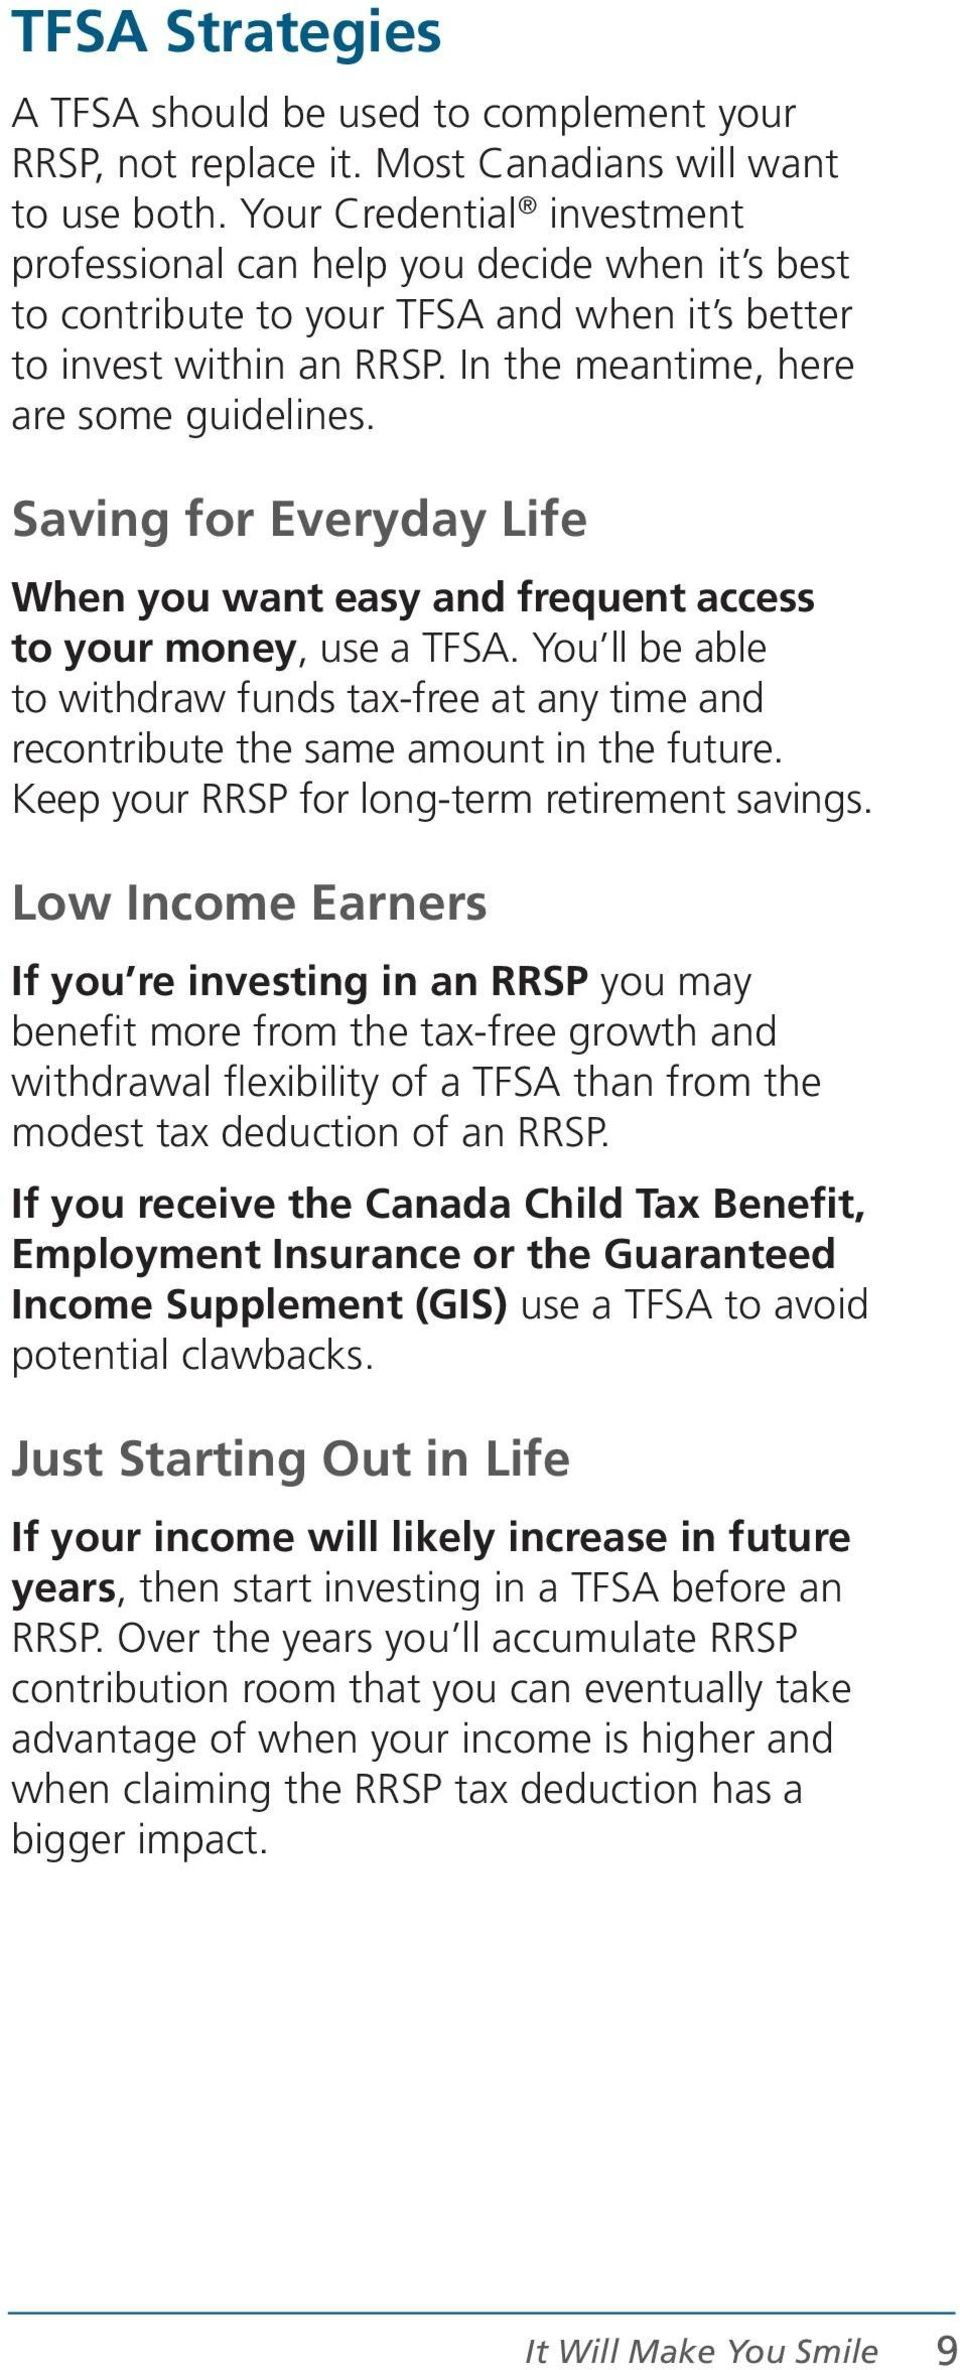 Saving for Everyday Life When you want easy and frequent access to your money, use a TFSA. You ll be able to withdraw funds tax-free at any time and recontribute the same amount in the future.